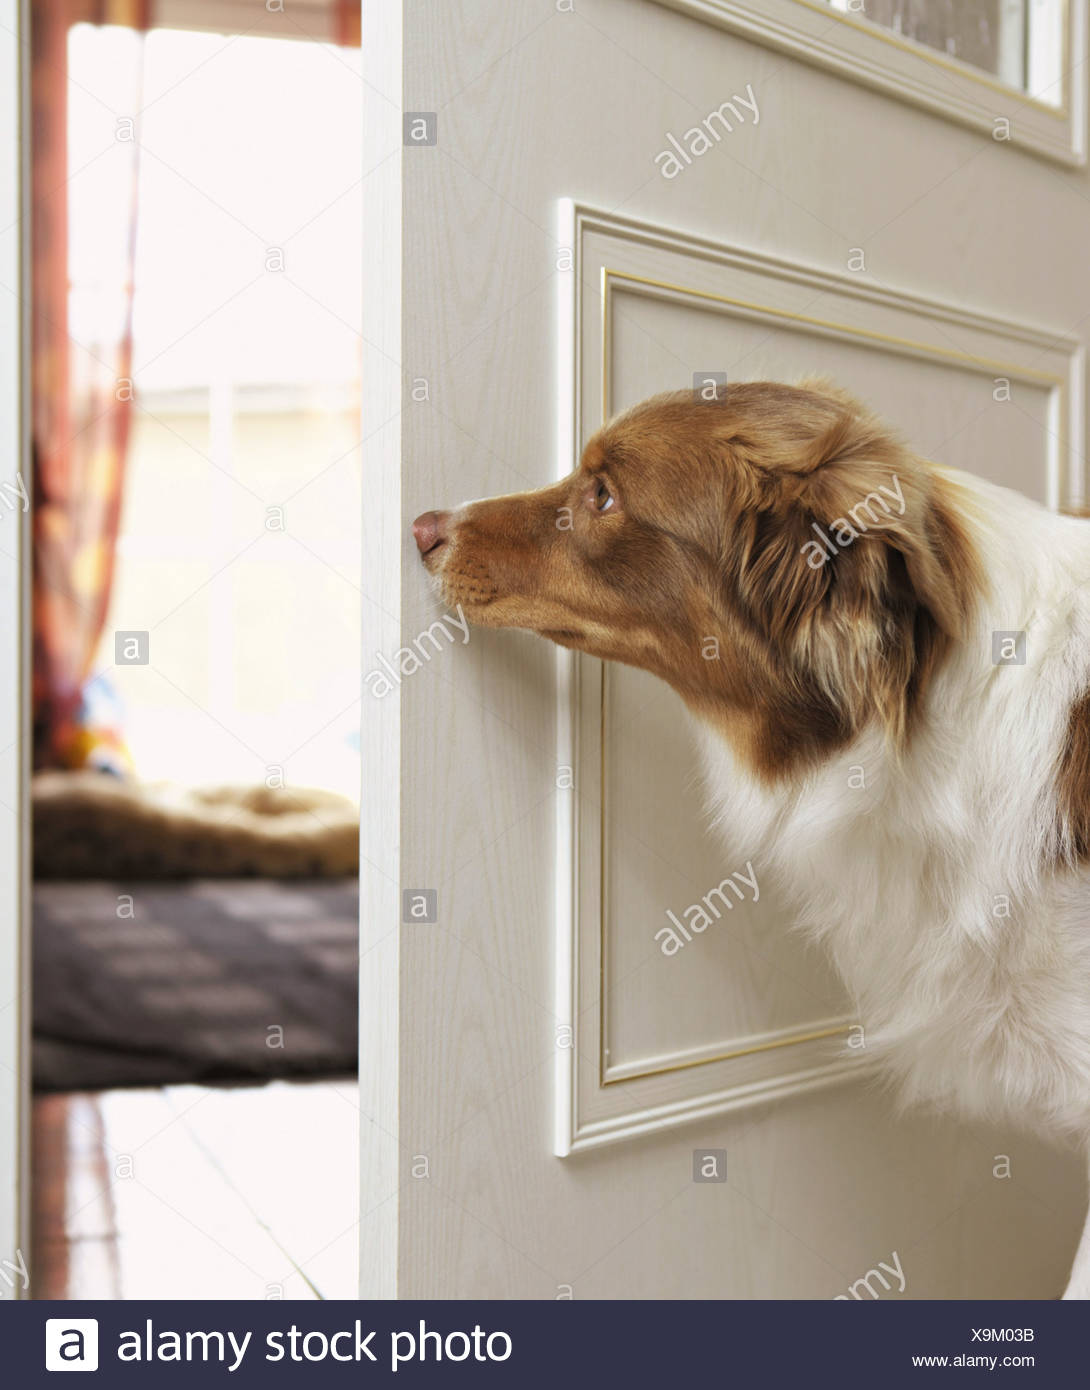 Australian Shepherd dog - standing behind the door - Stock Image